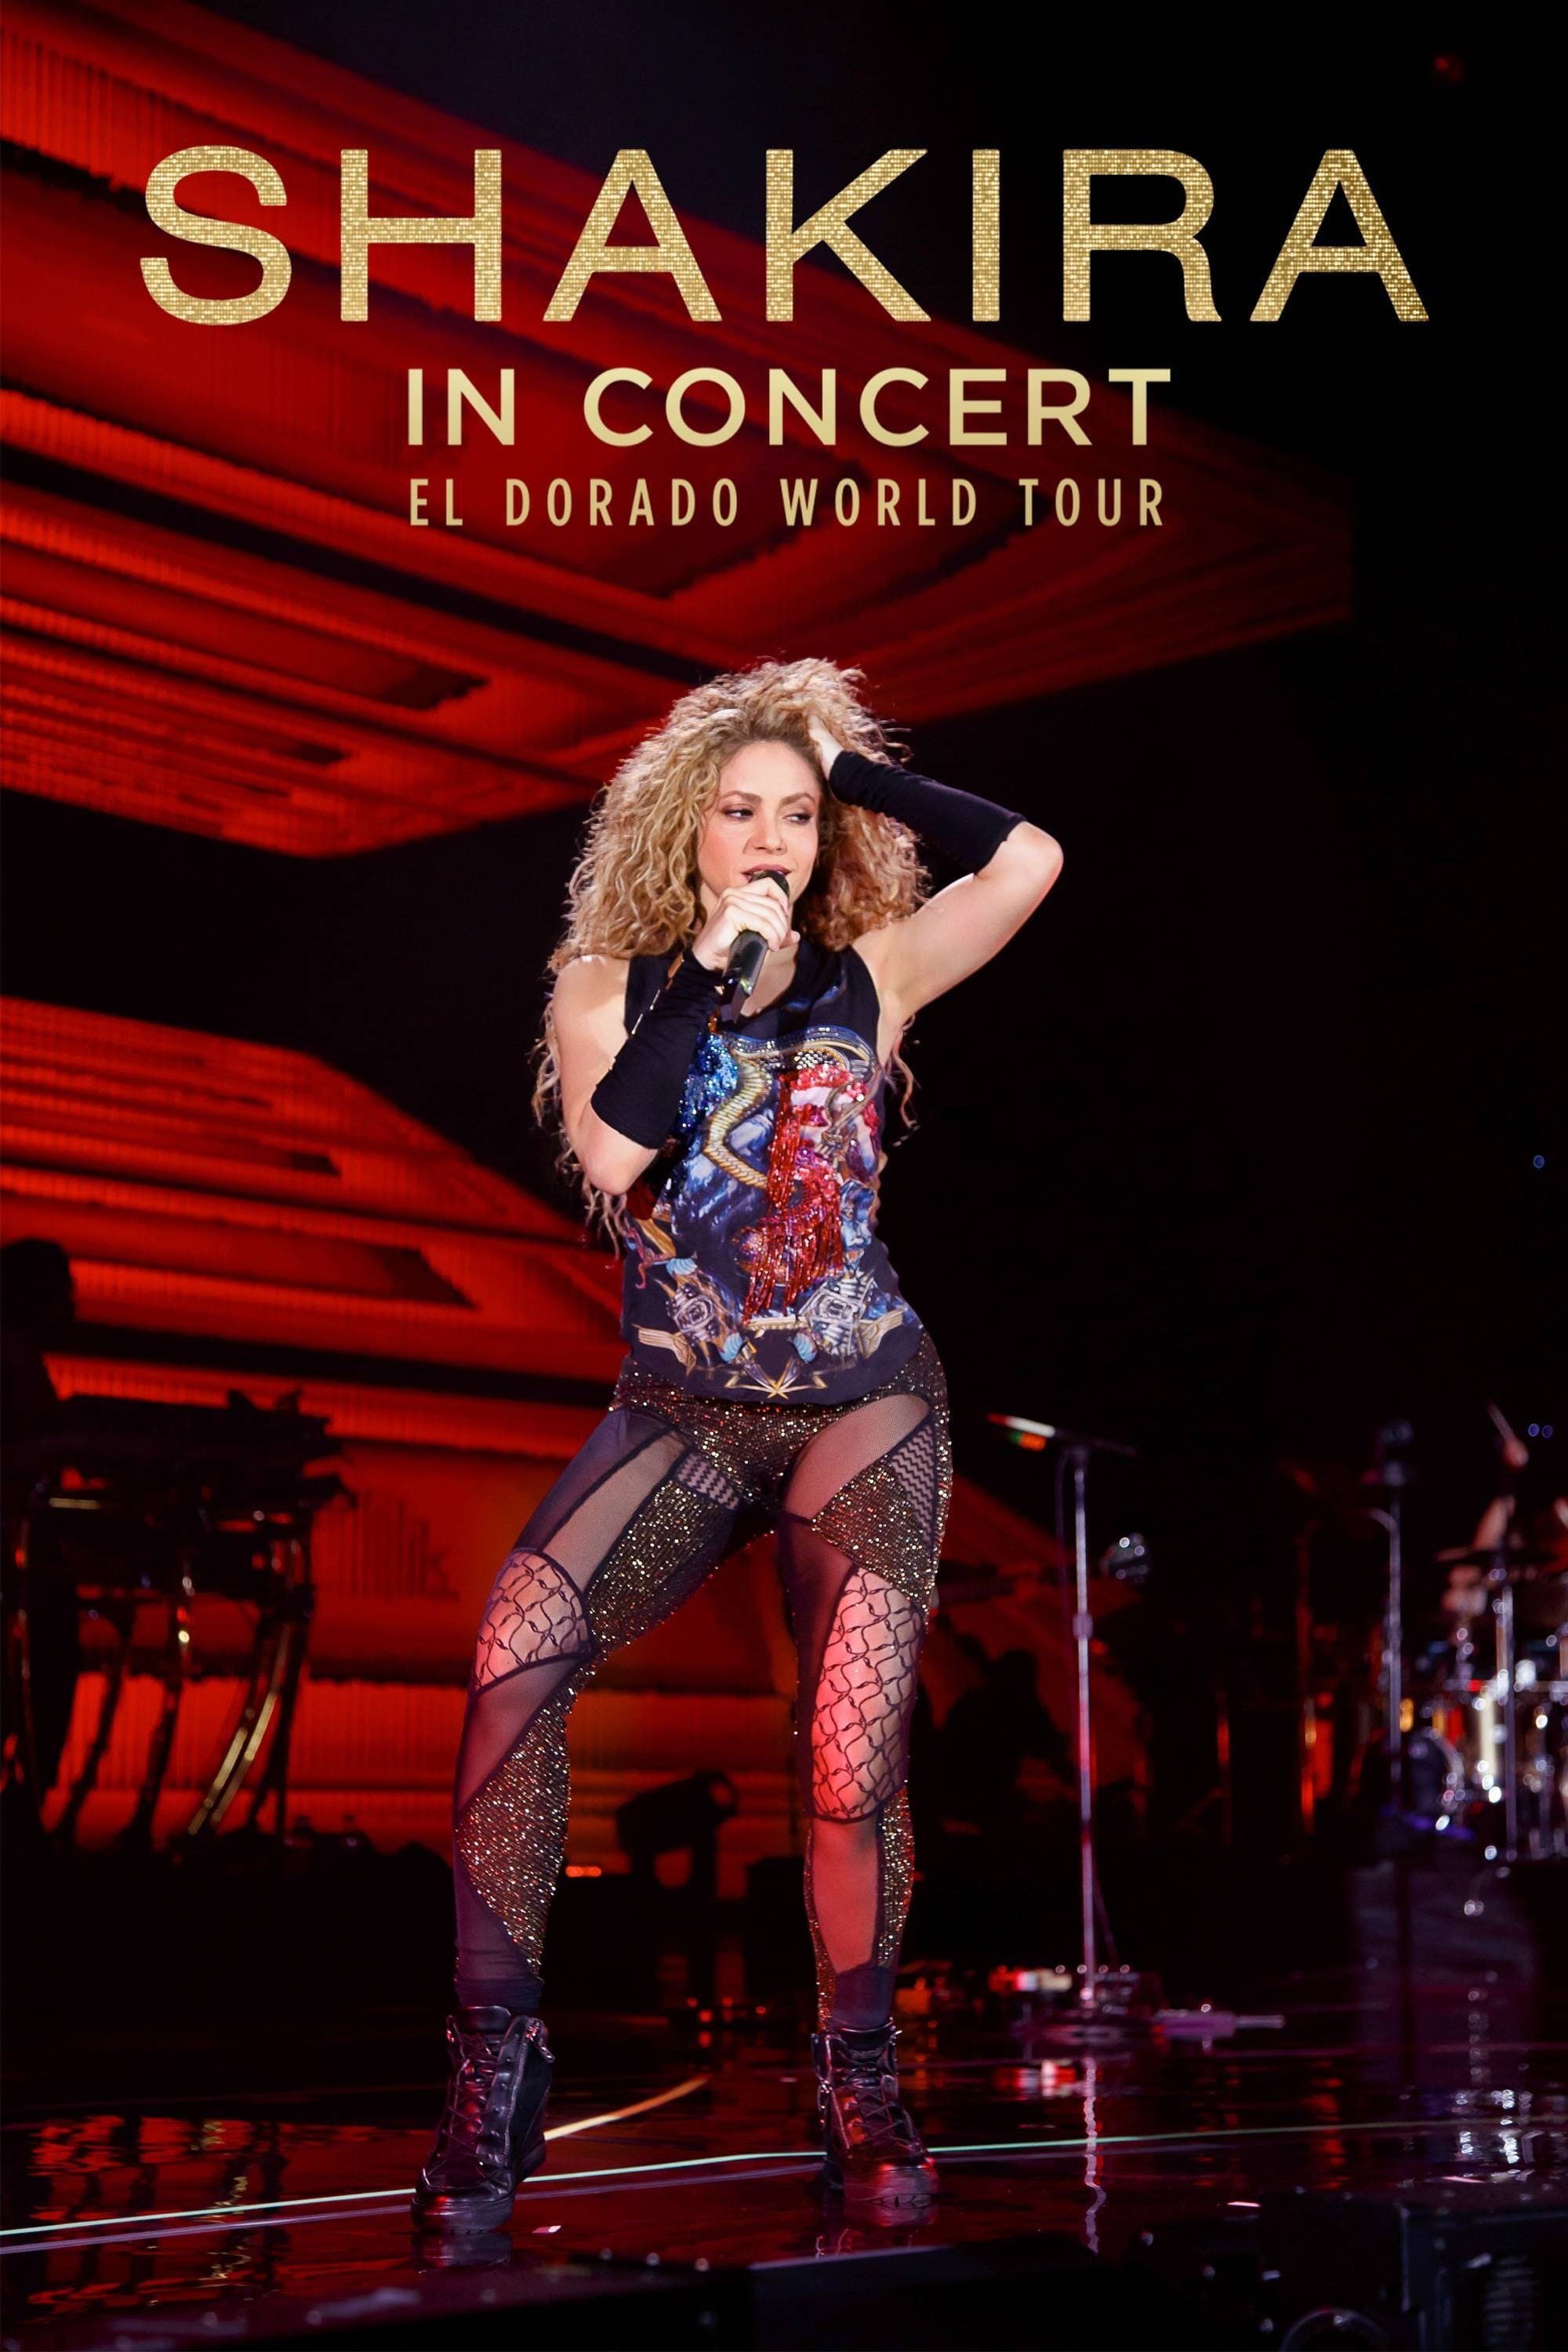 Shakira In Concert: El Dorado World Tour Legendado